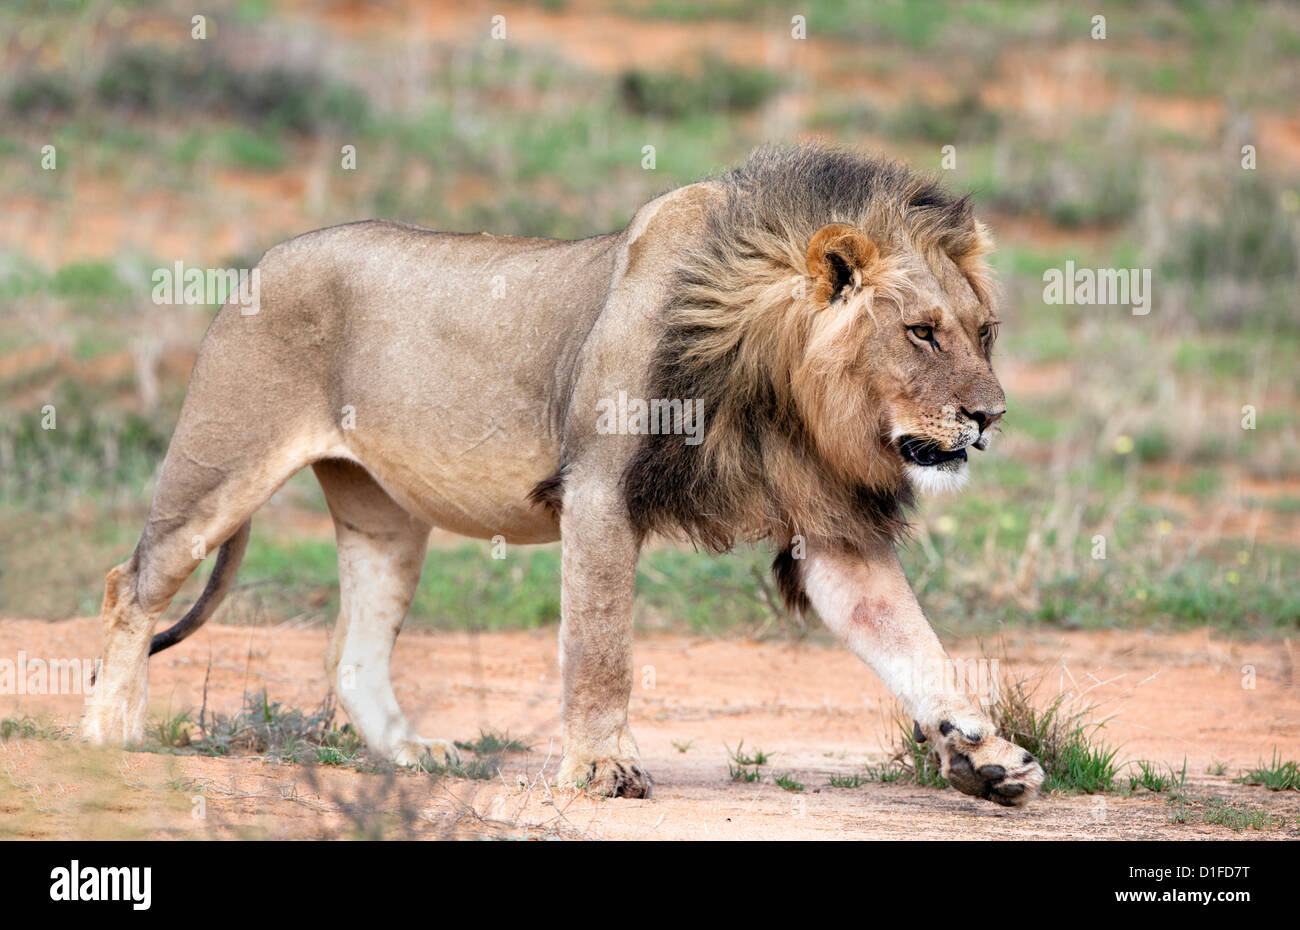 Lion (Panthera leo), Kgalagadi Transfrontier Park, Northern Cape, South Africa, Africa - Stock Image